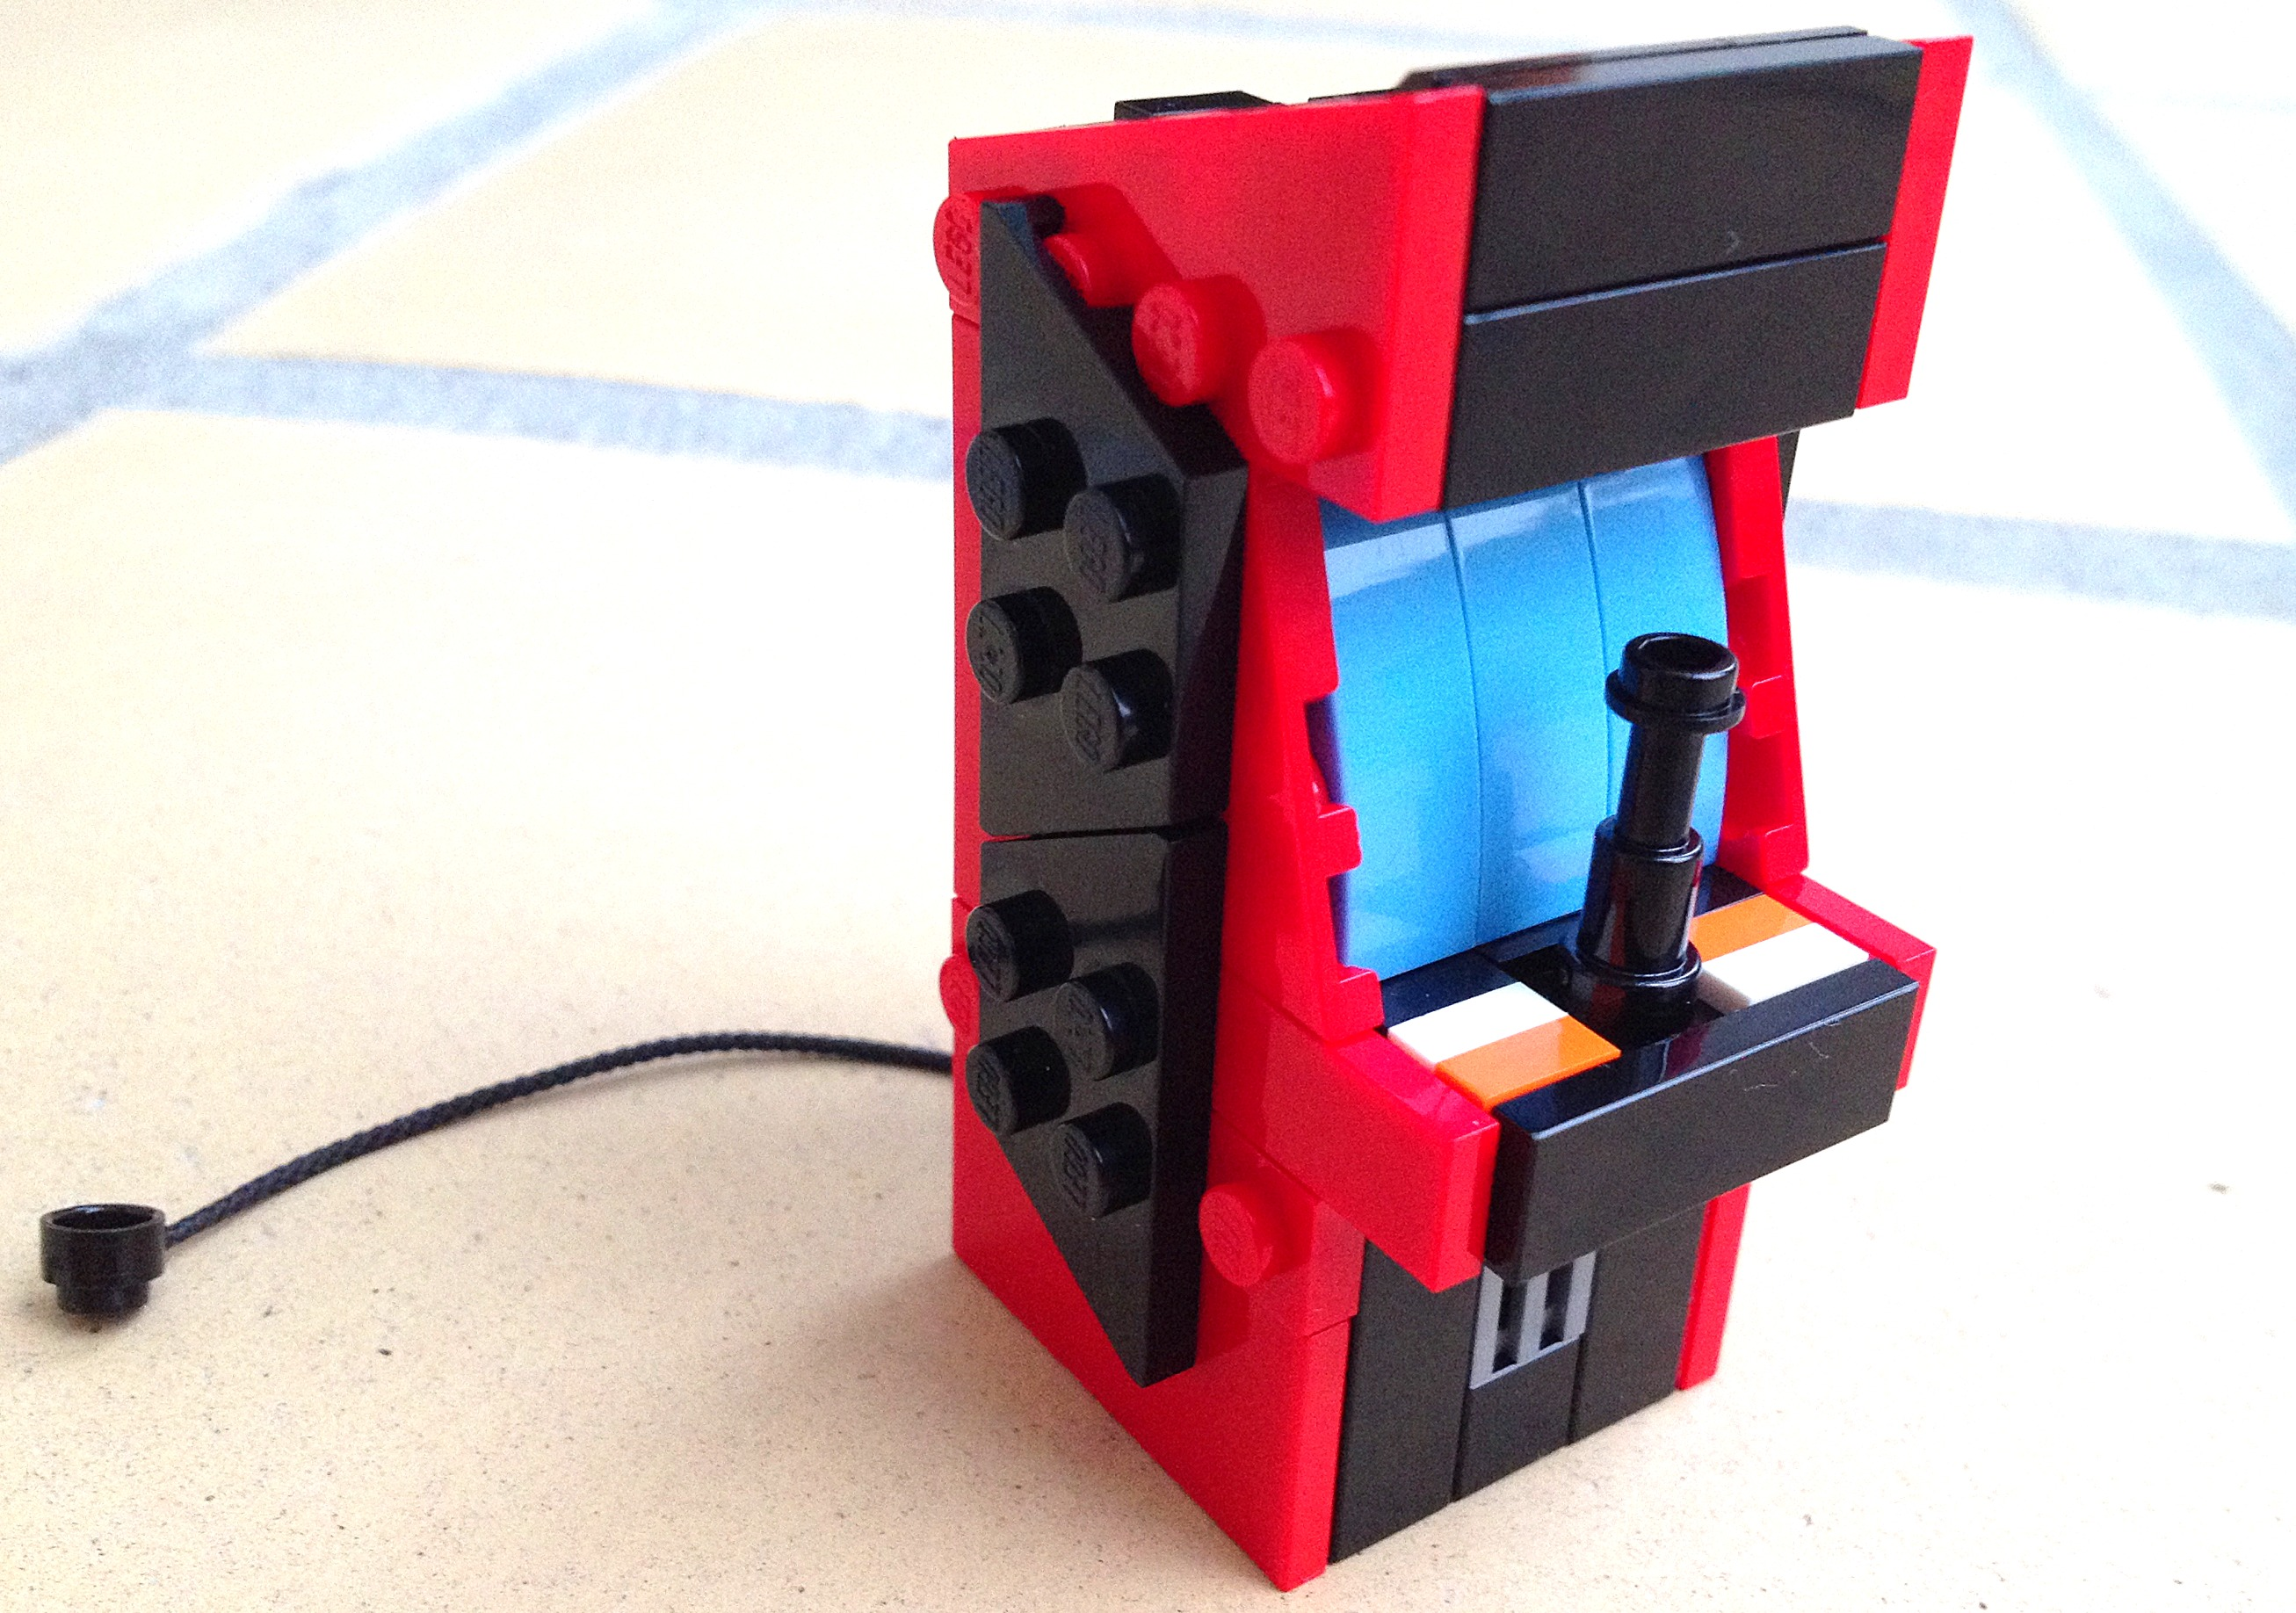 LEGO arcade machine made from LEGO bricks. Awesome office gadget